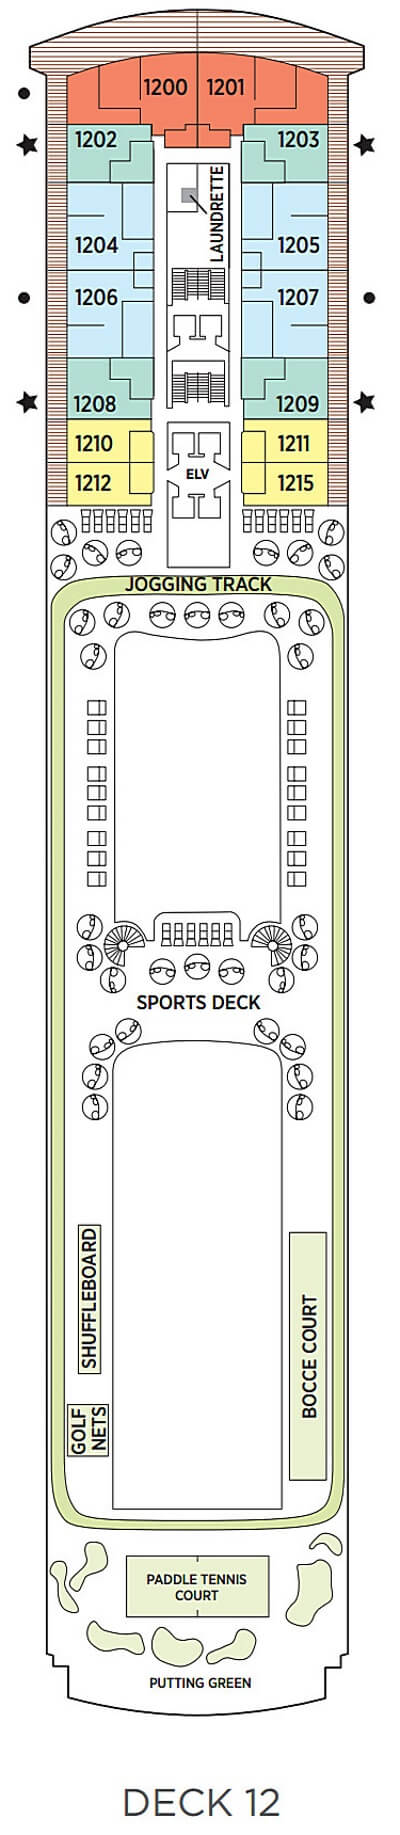 Seven Seas Explorer Deck 12 layout